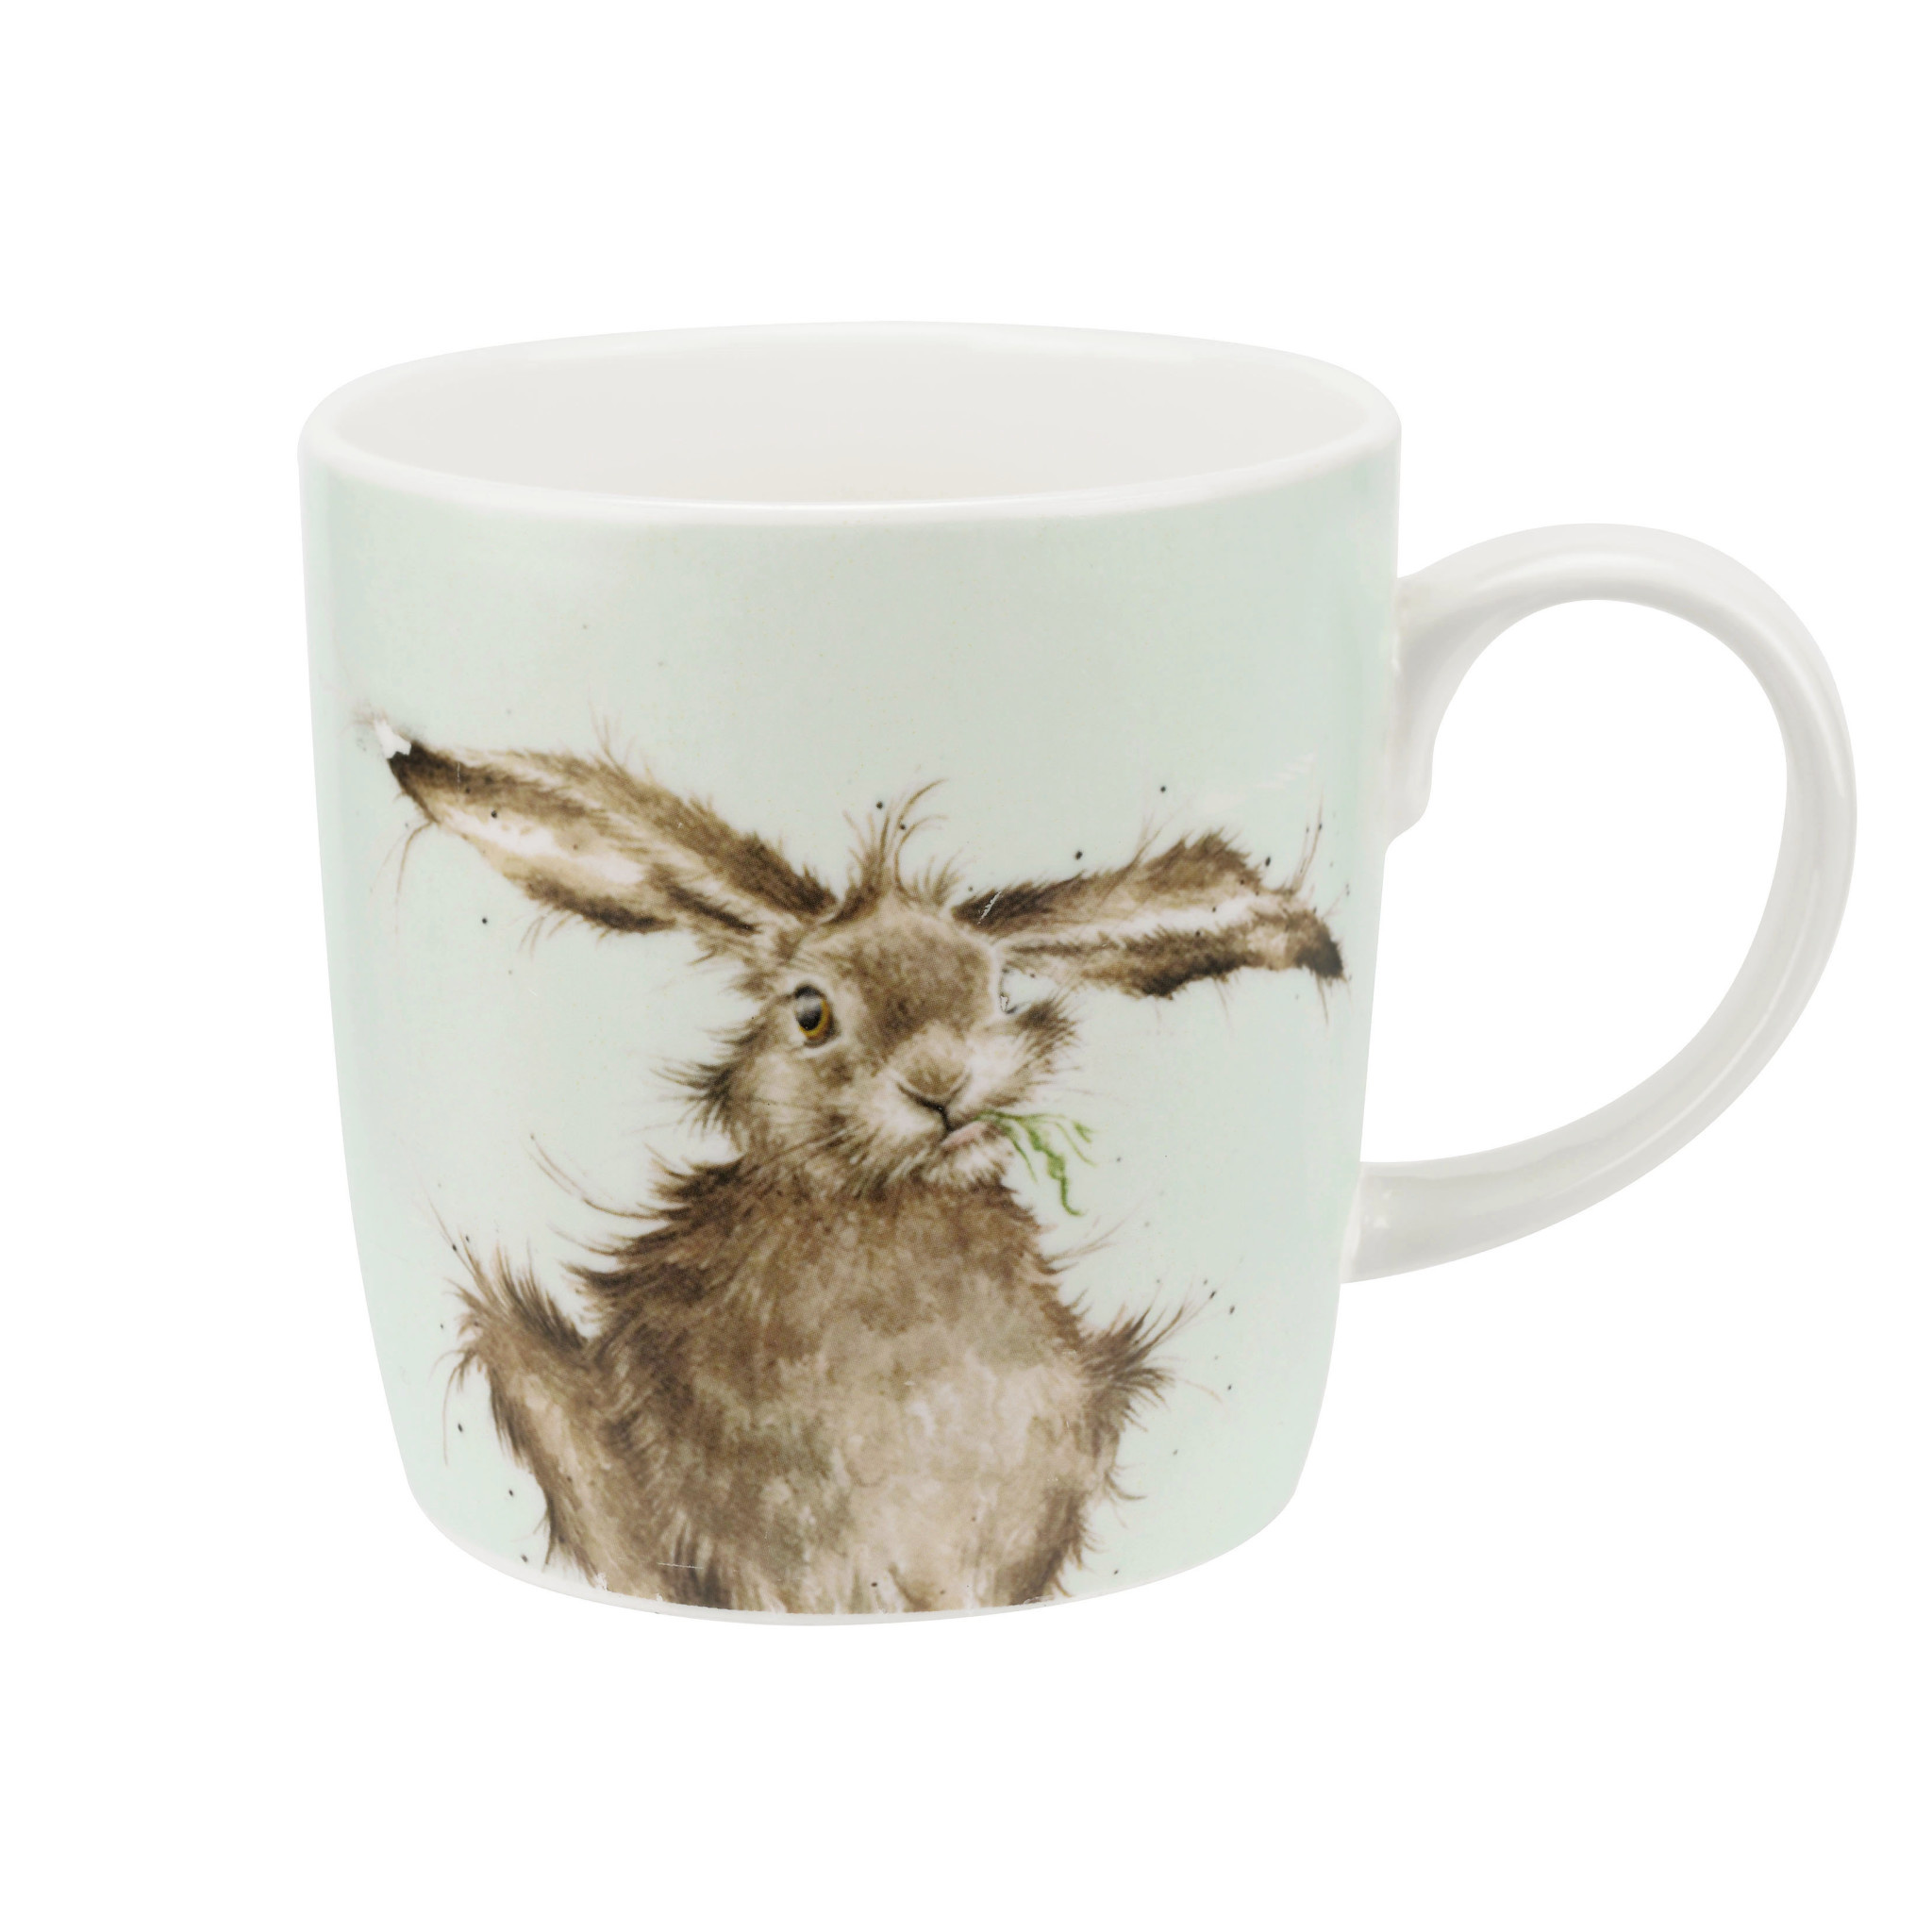 Wrendale Designs Large 'Hare-Brainded' Mug